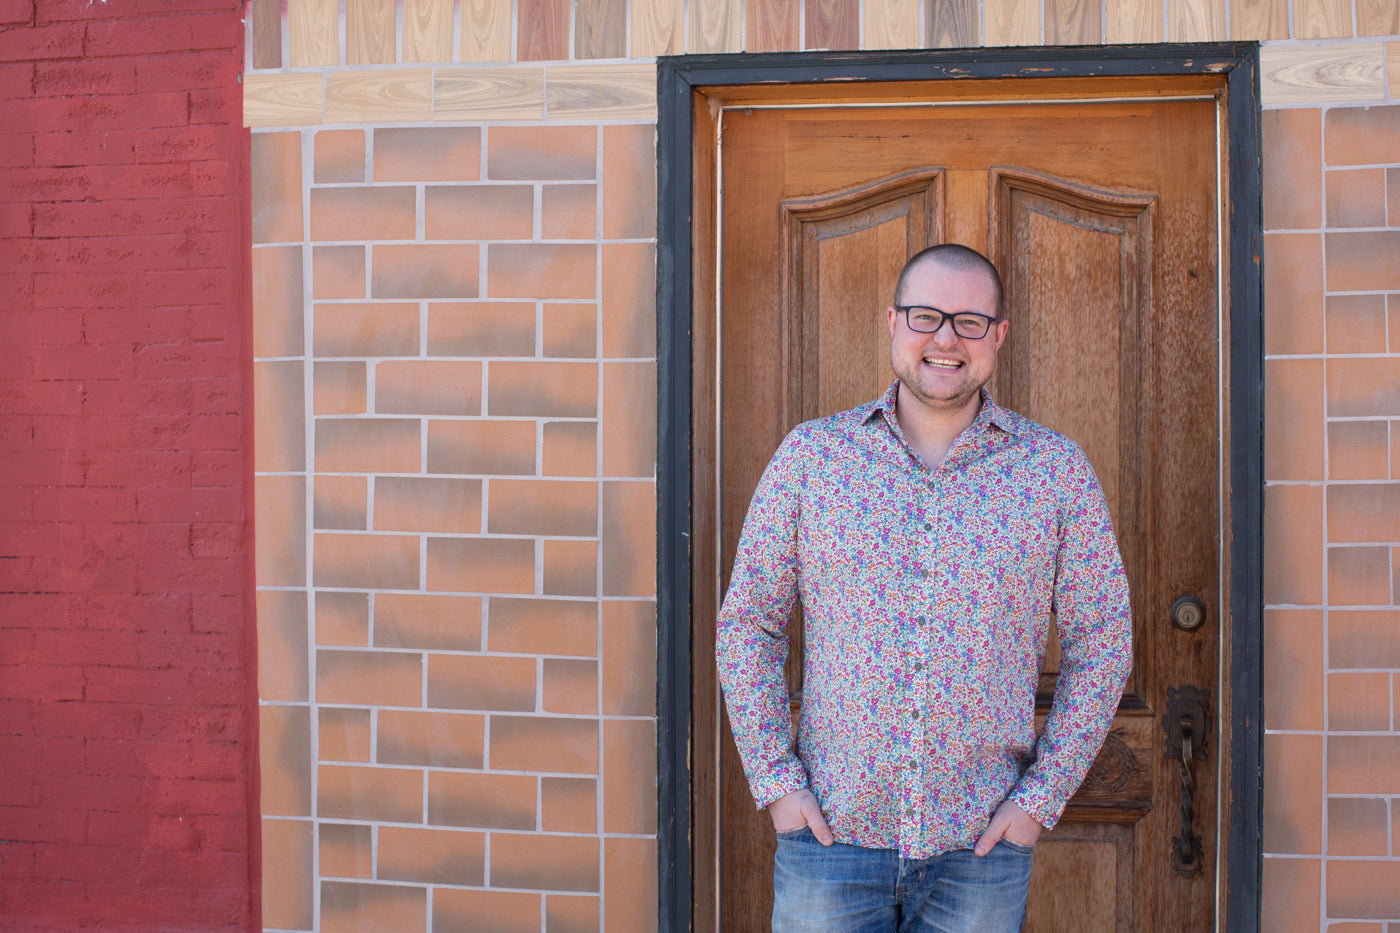 Bob wearing his long sleeved Fairfield floral shirt with his hands in his pockets, smiling at the camera.  Bob is standing in front of a wooden door of a brick building with accents of bright barn red brick.